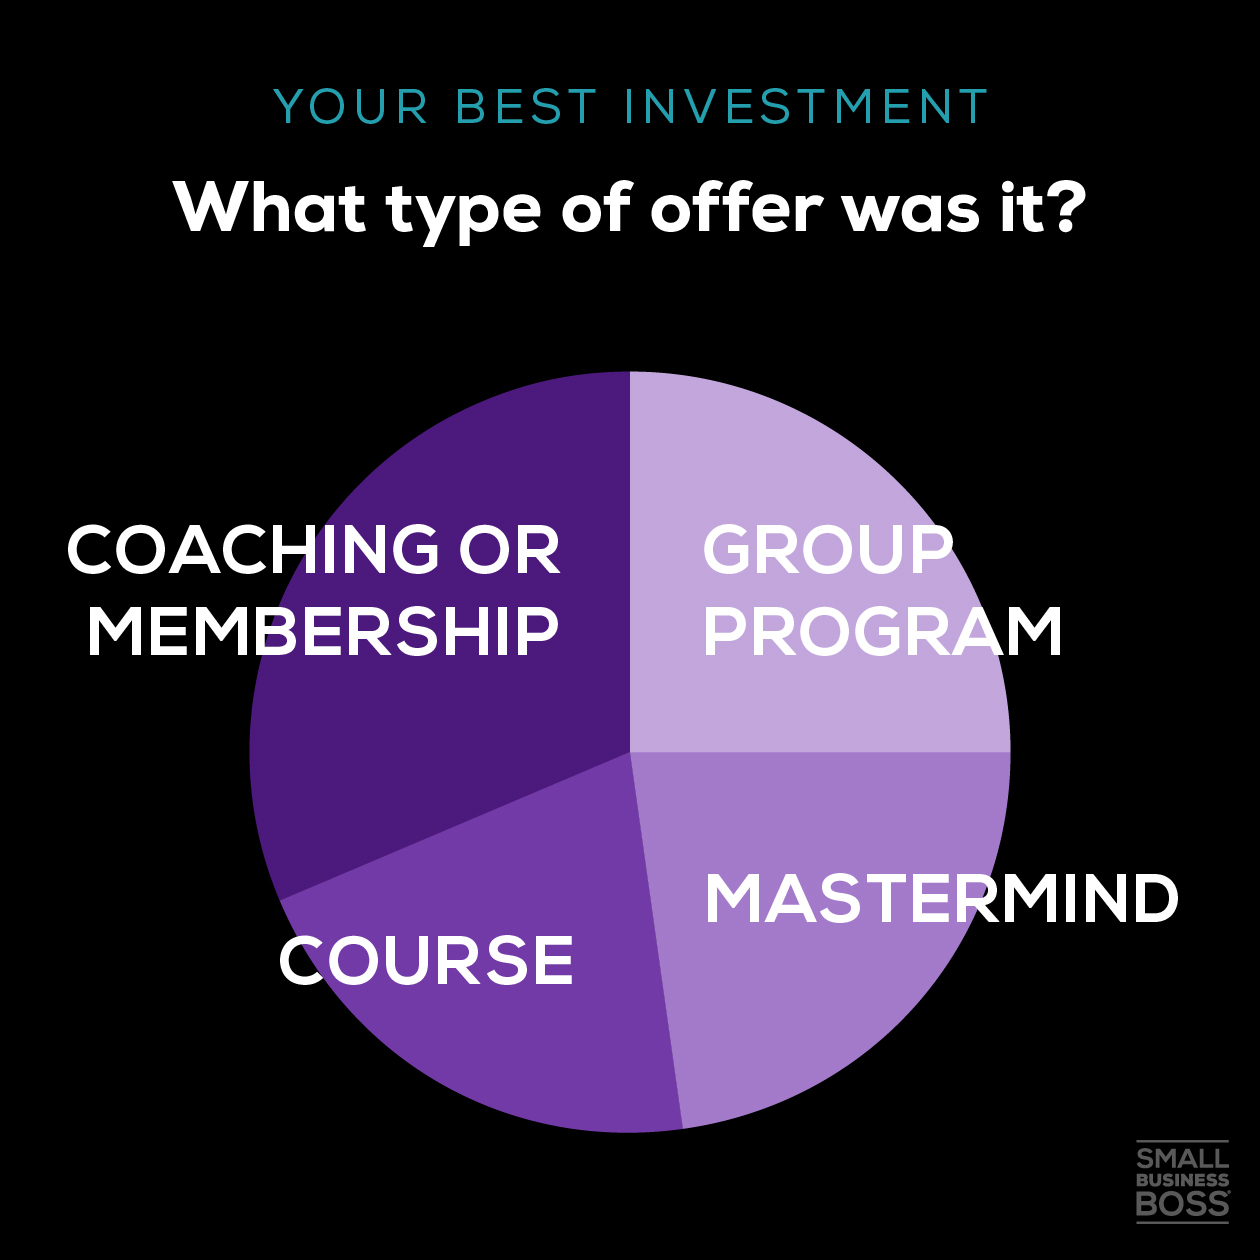 Best investment-what type